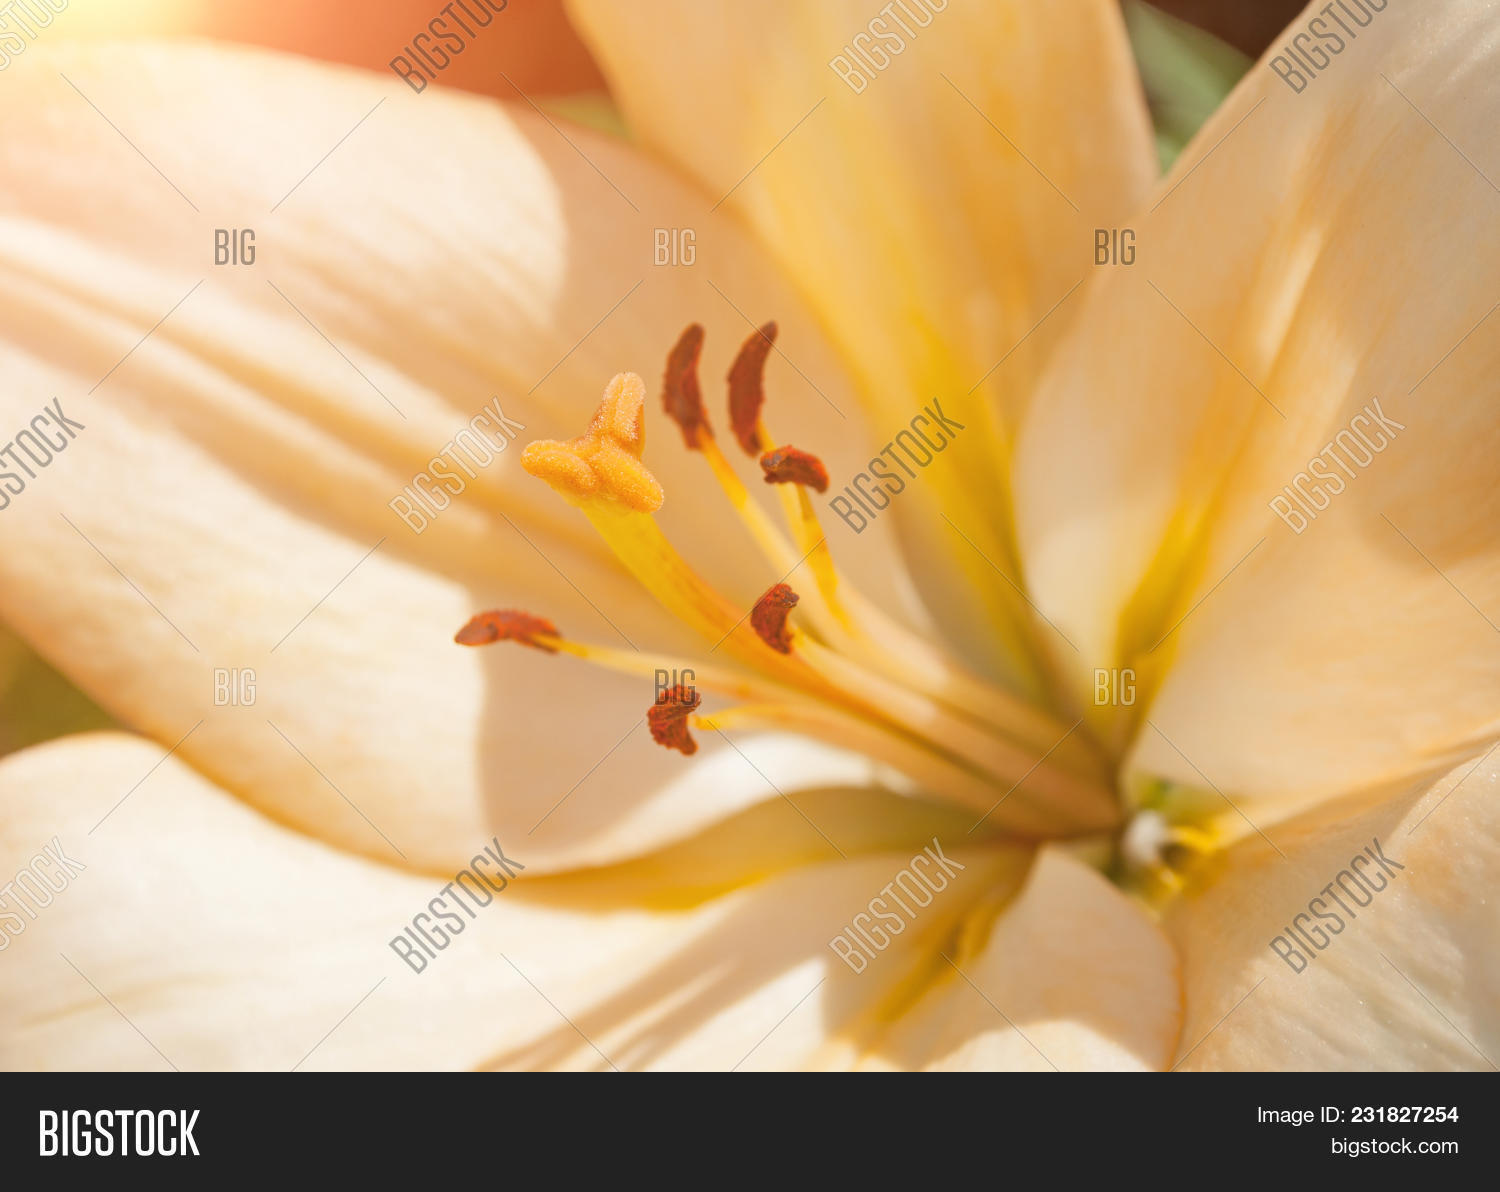 Lily summer flower image photo free trial bigstock lily summer flower of peach color blooming in the summer garden selective focus at the izmirmasajfo